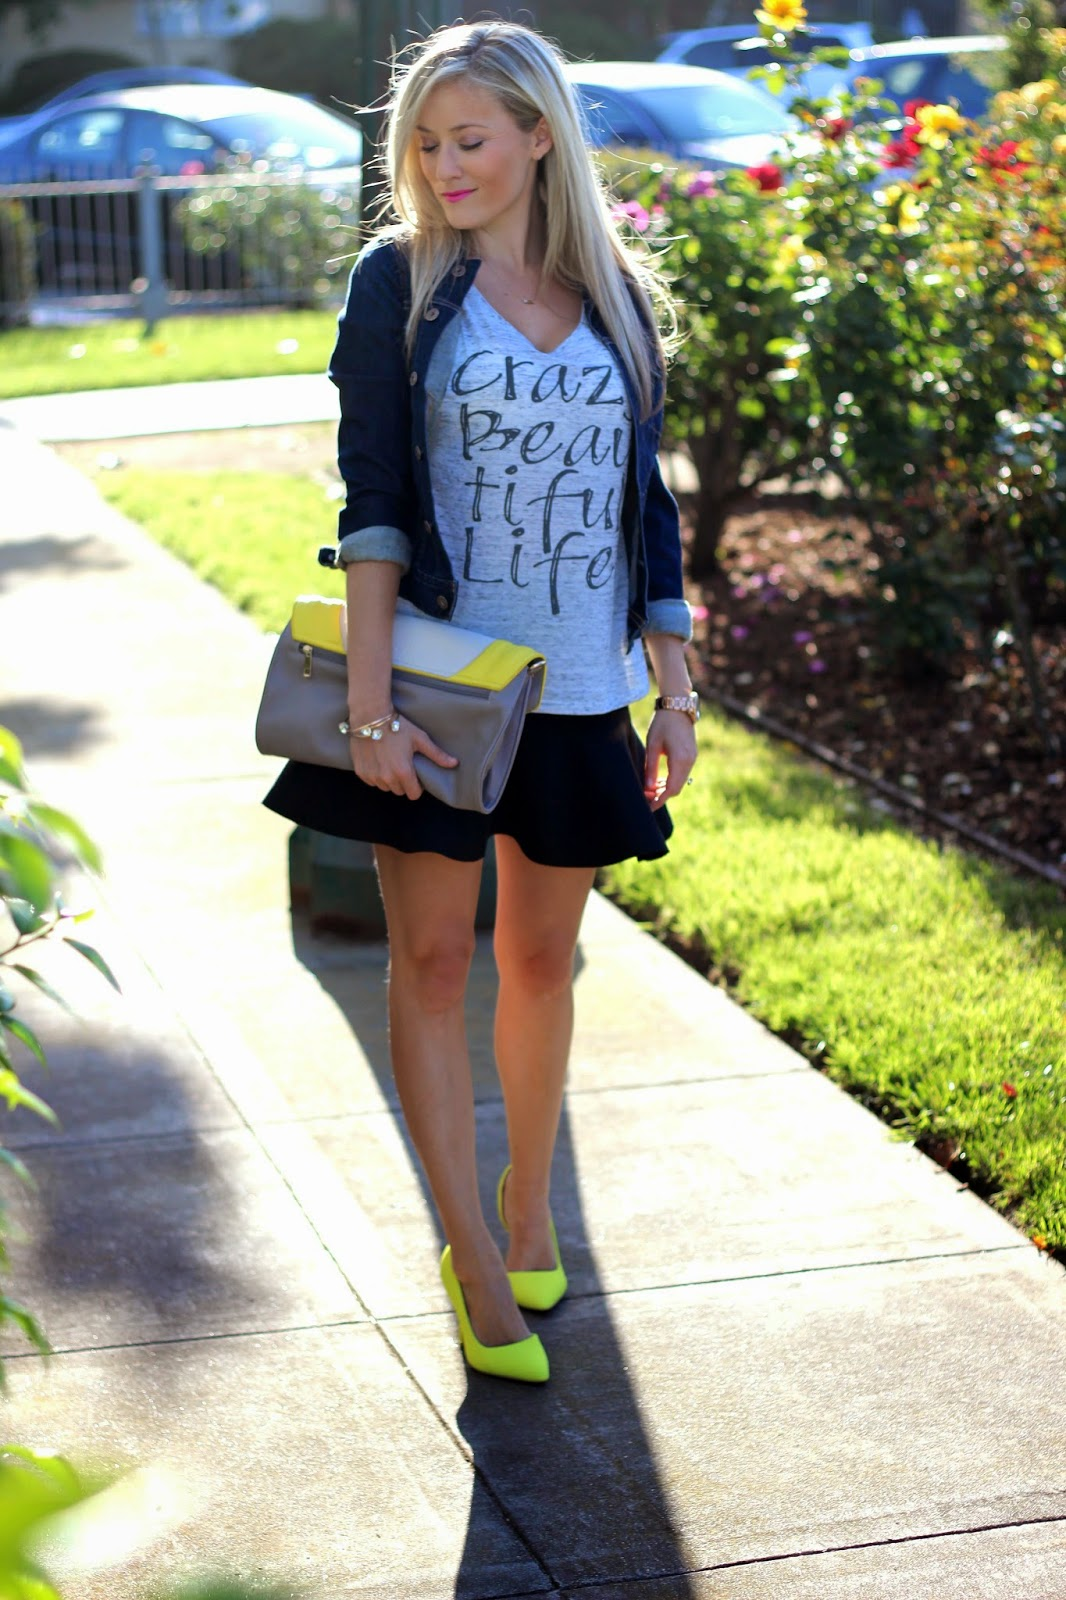 Crazy Beautiful Life Tee, Skirt, Neon Pump